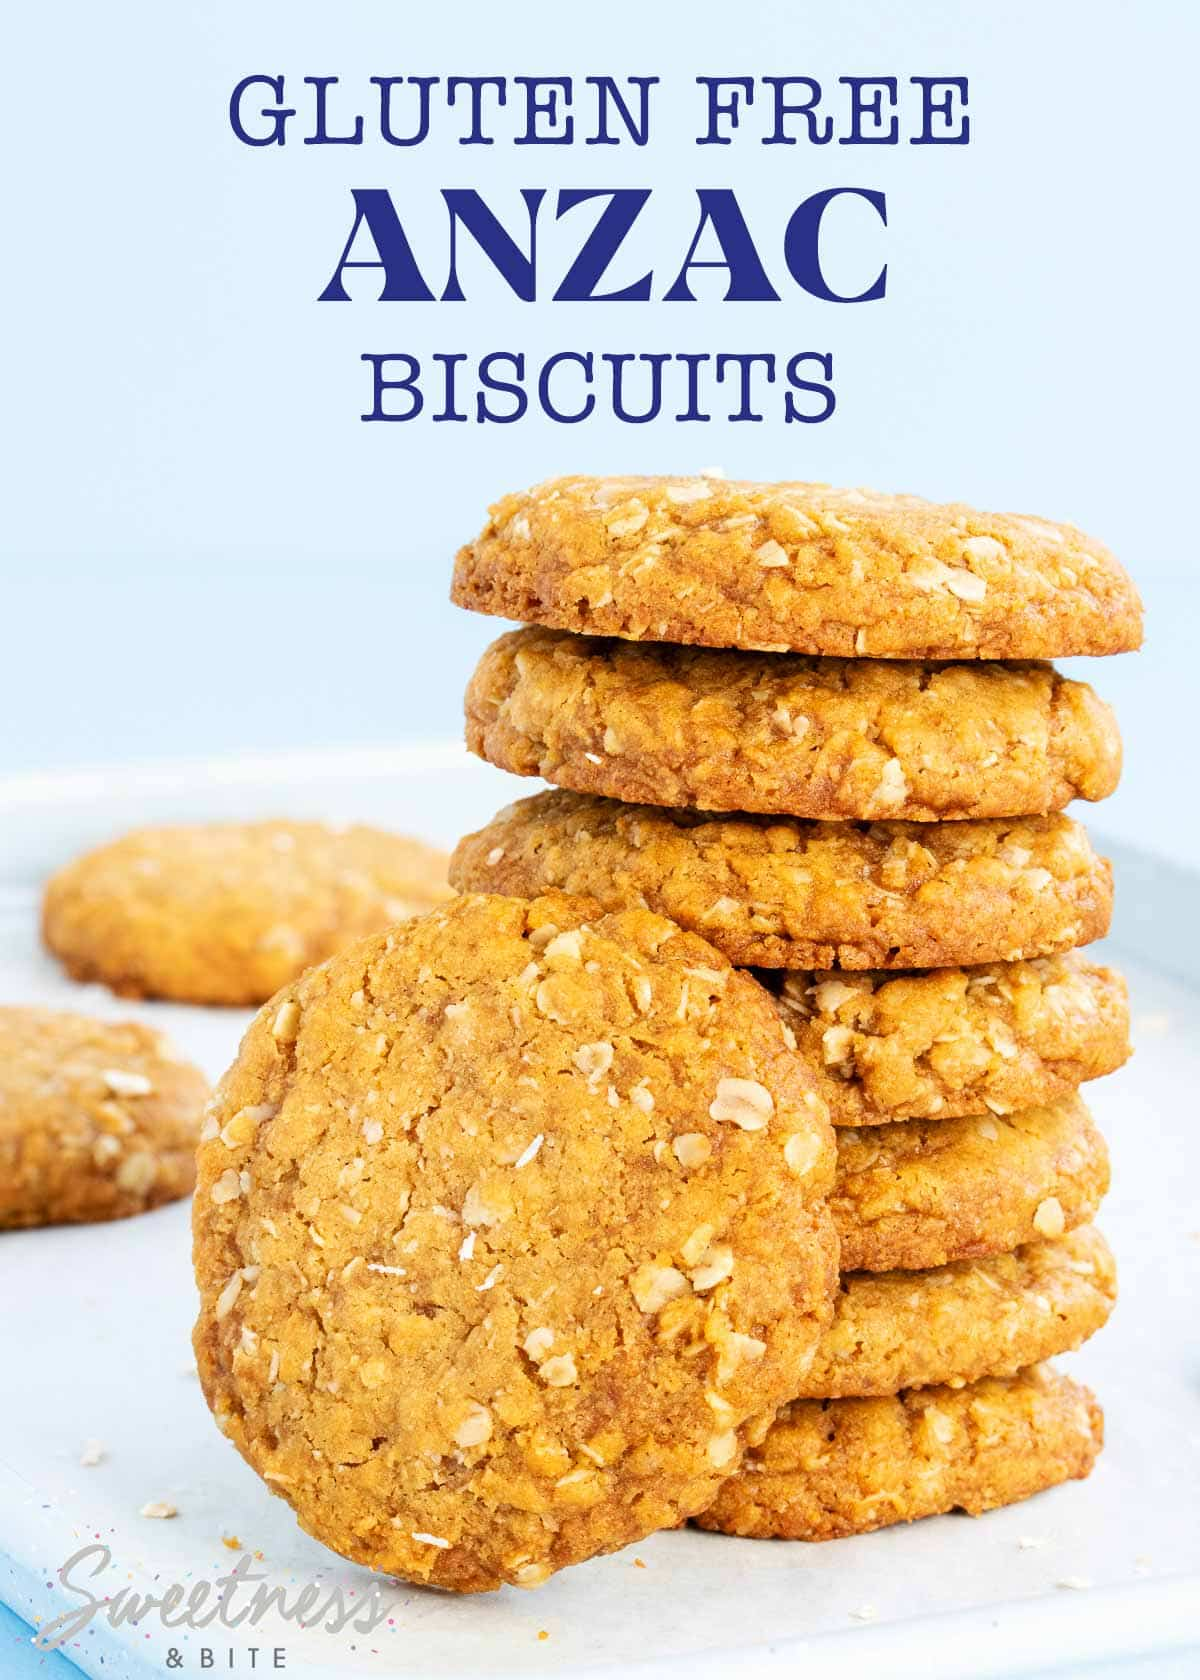 Stack of gluten free anzac biscuits